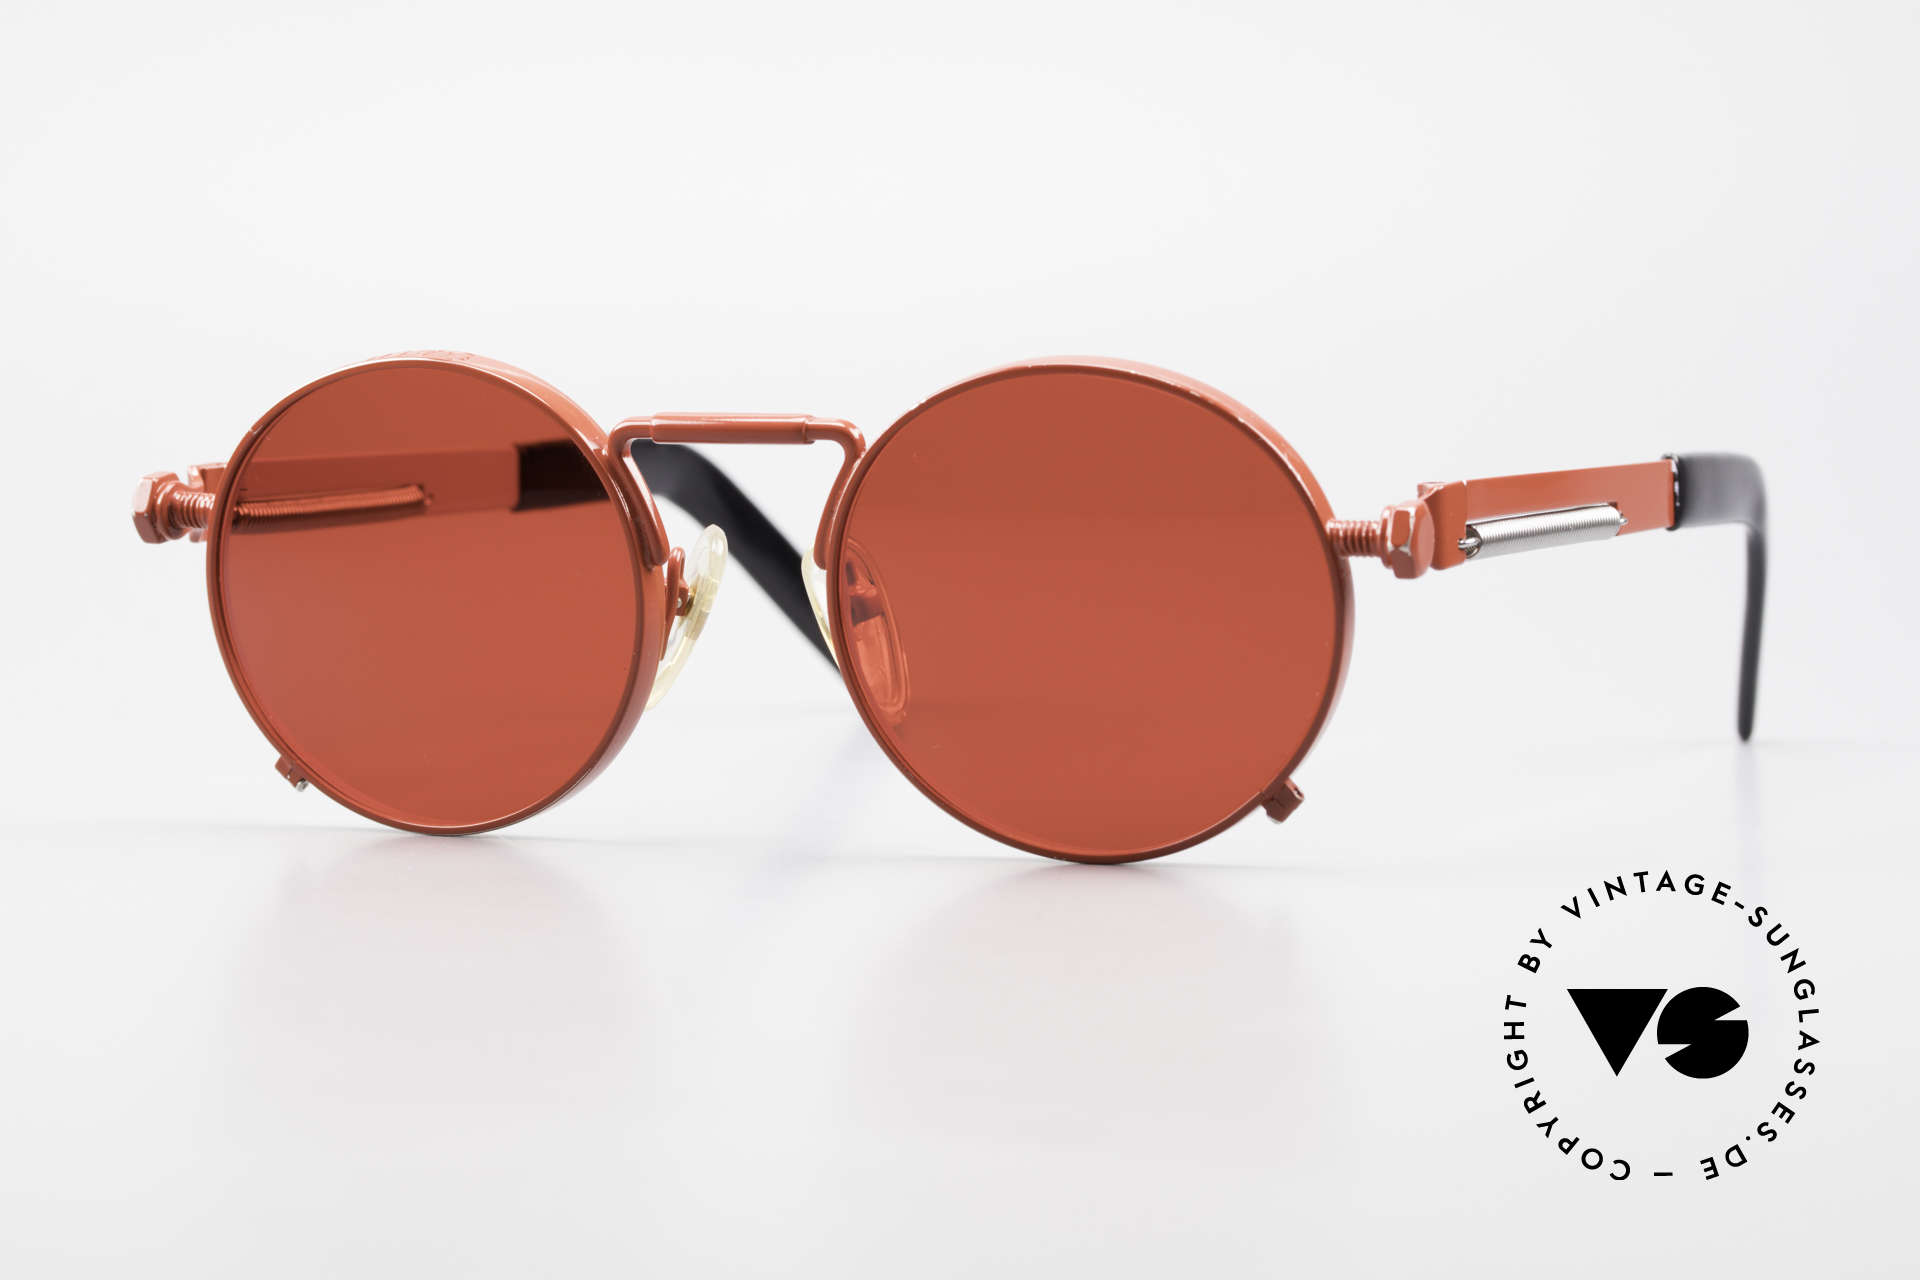 Jean Paul Gaultier 56-8171 Customized Red Edition, valuable and creative Jean Paul Gaultier designer shades, Made for Men and Women